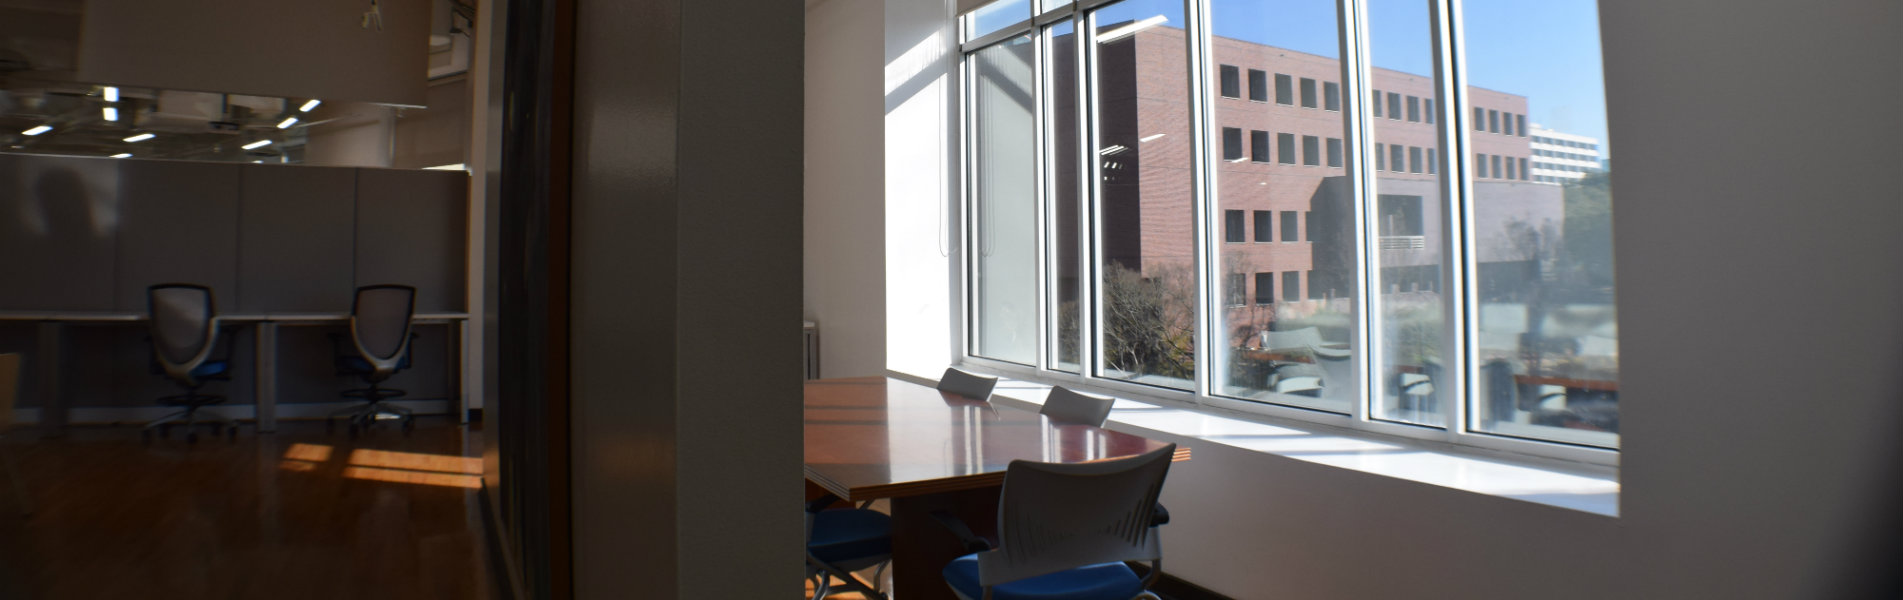 Conference room at the Institute for Nonprofit Innovation and Excellence overlooking City Hall Tallahassee